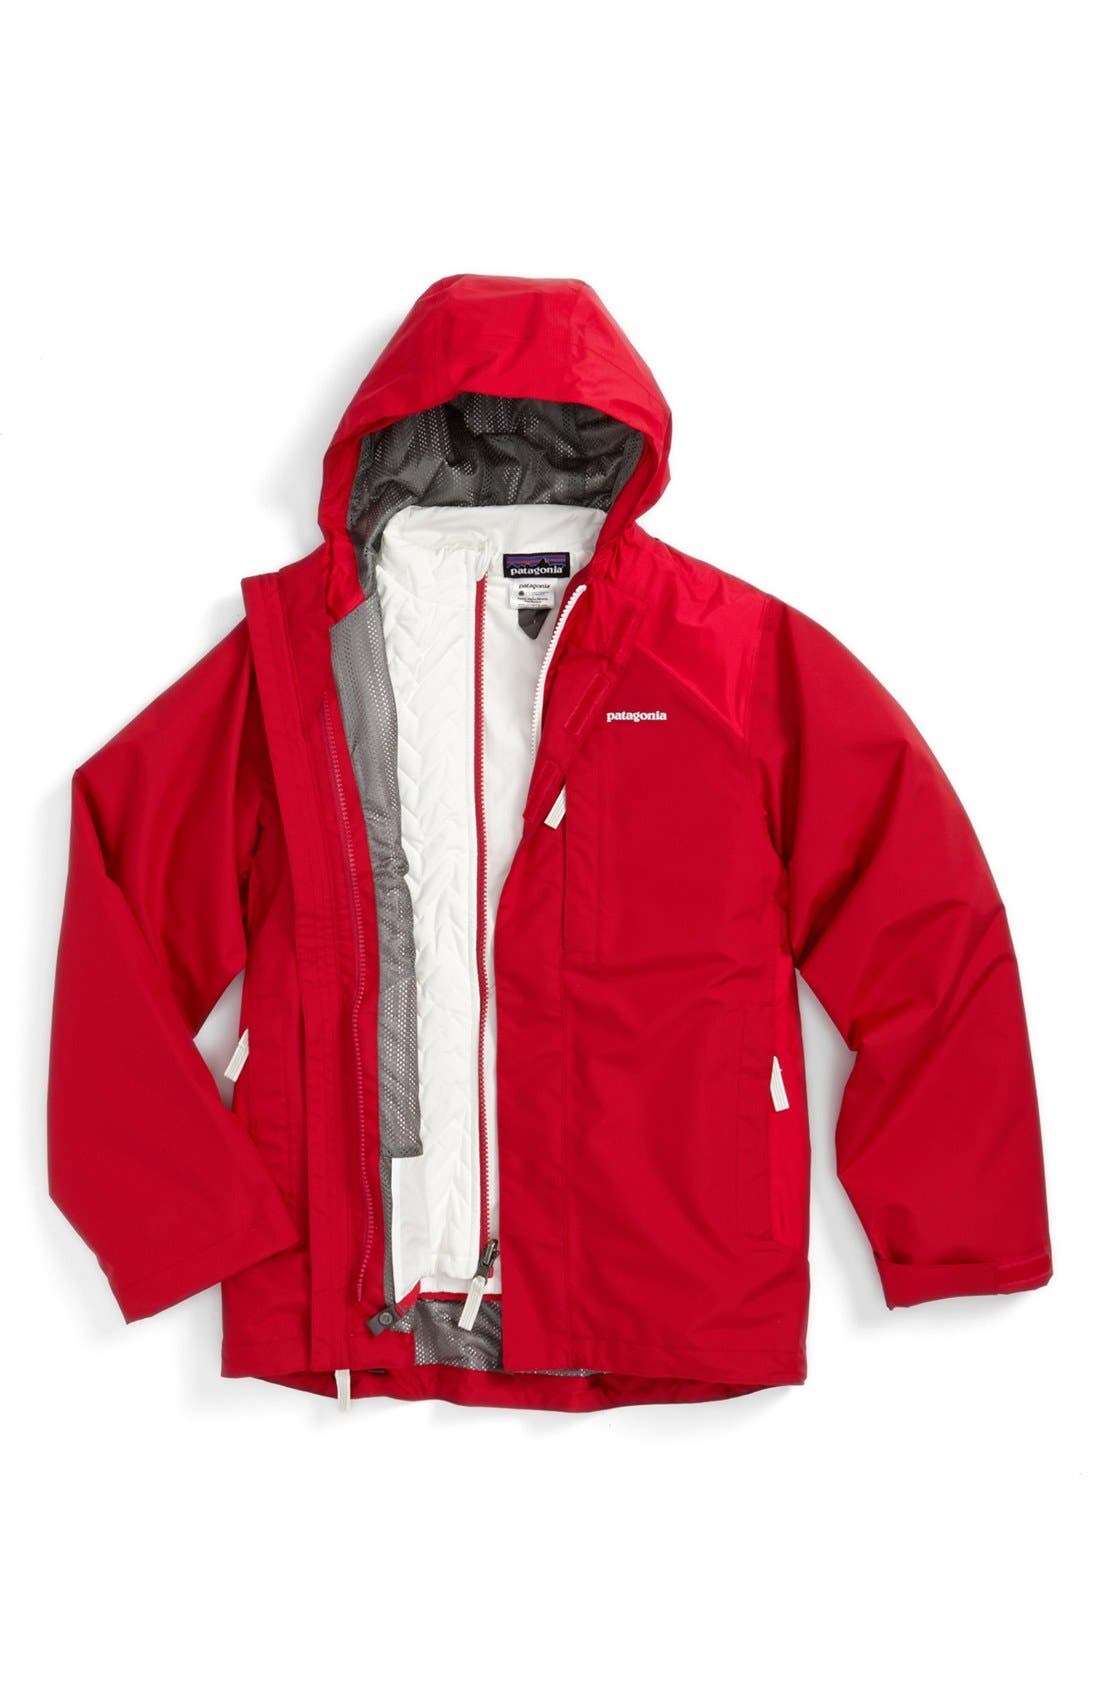 Alternate Image 1 Selected - Patagonia Waterproof 3-in-1 Snowsport Jacket (Little Girls & Big Girls)